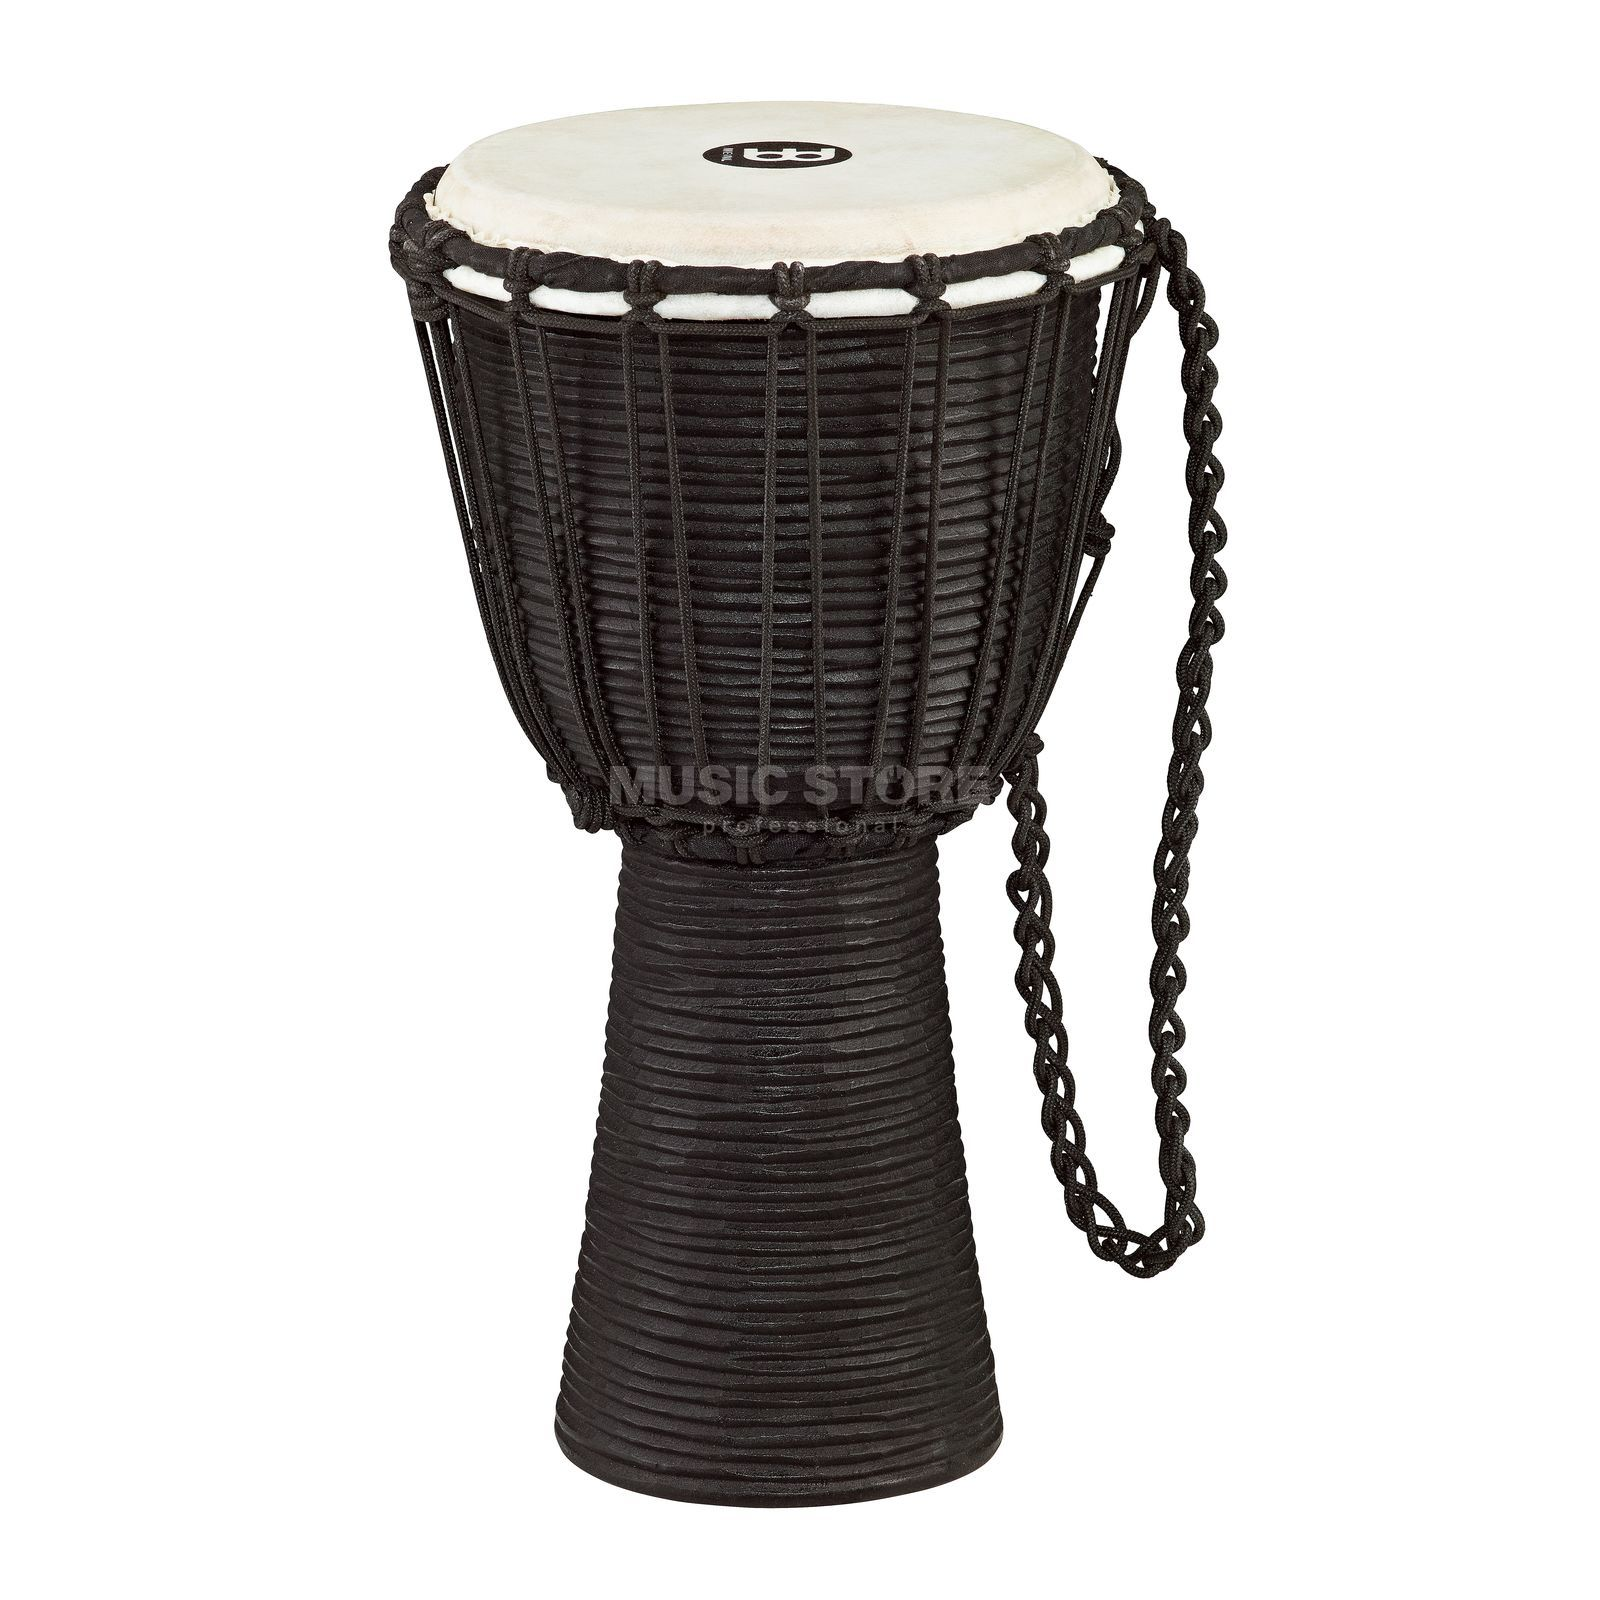 "Meinl Headliner Djembe HDJ3-S, 8"", Black River Series Product Image"